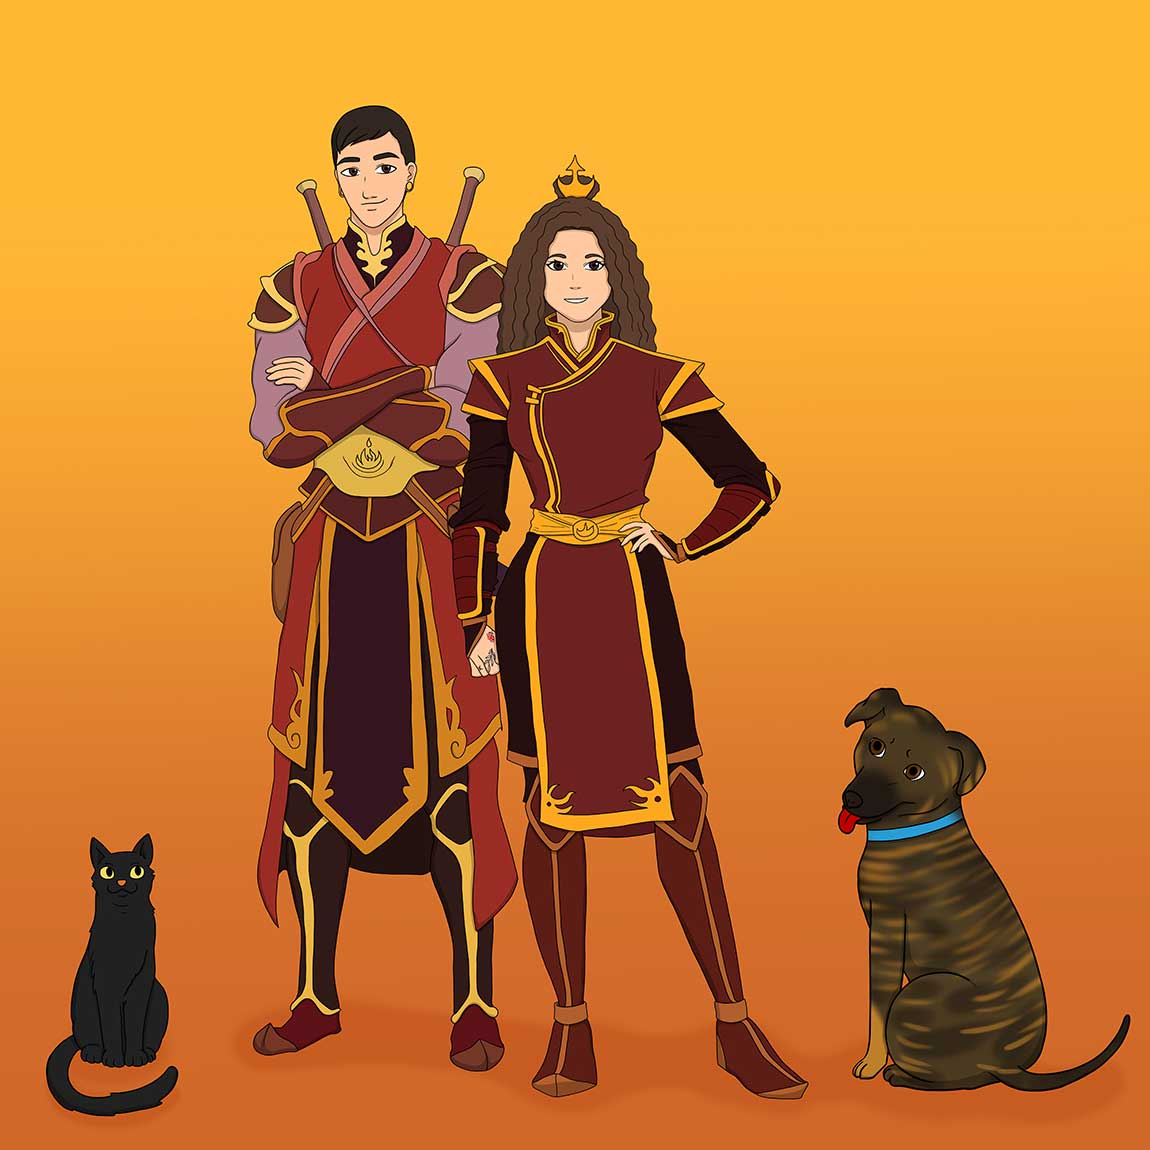 Man, woman and their pets cat and dog turned into Anime characters. They are dressed like Fire Nation in the Avatar: The Last Air Bender cartoon. The man is standing with his hands crossed, and the woman is holding one hand on her hip. The cat is all black looking seriously, and the dog looks friendly, has his tongue sticking out.